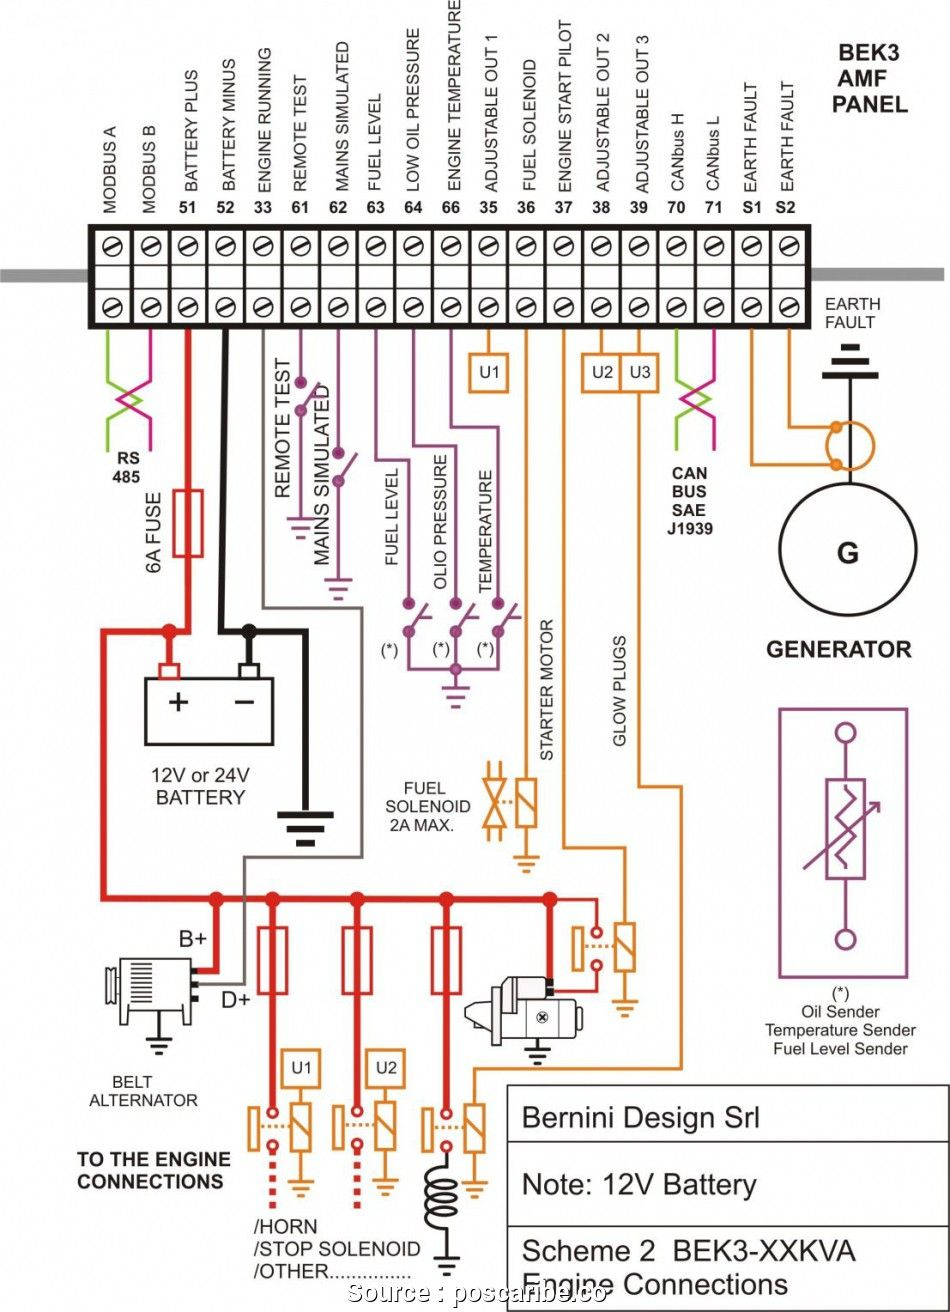 13 Clever Electrical Wiring Diagrams For Dummies For You Https Bacamajalah Com 13 Clev Electrical Circuit Diagram Circuit Diagram Electrical Wiring Diagram